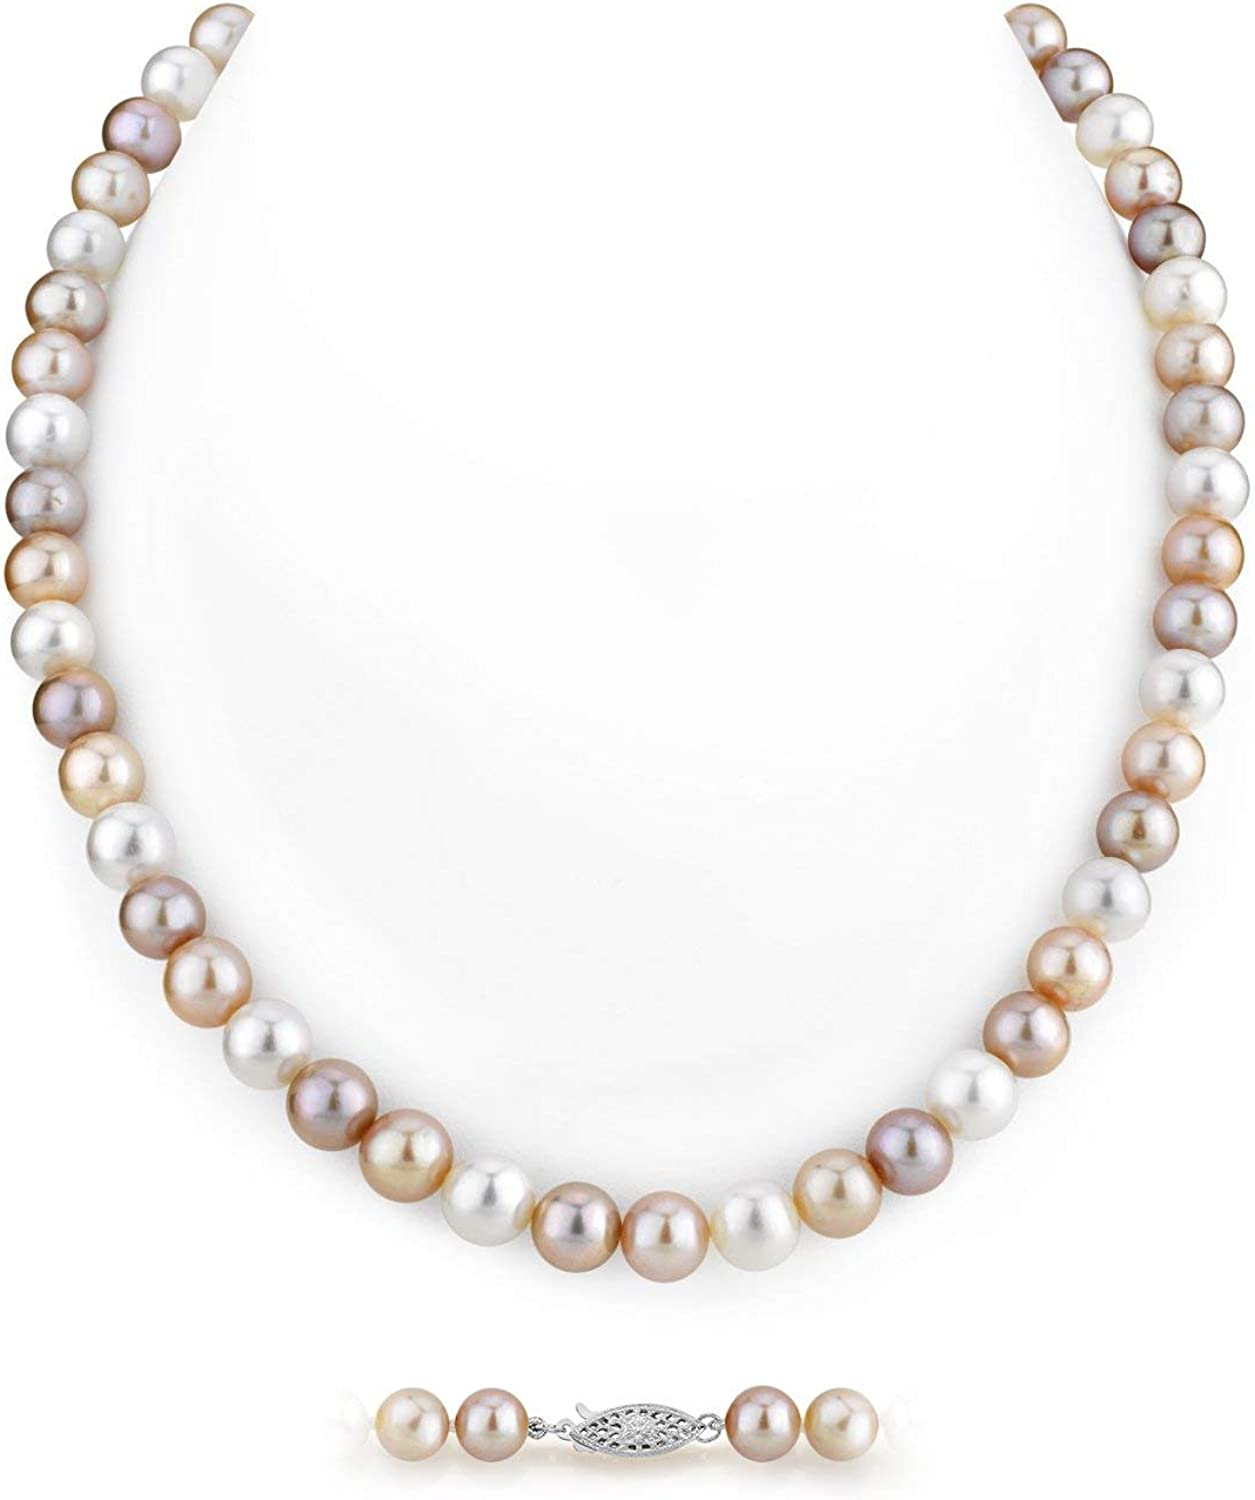 B07V6JPLB4 Multicolor Freshwater Cultured Pearl Necklace for Women in AAA Quality - THE PEARL SOURCE 51ta-lZ7Y9L